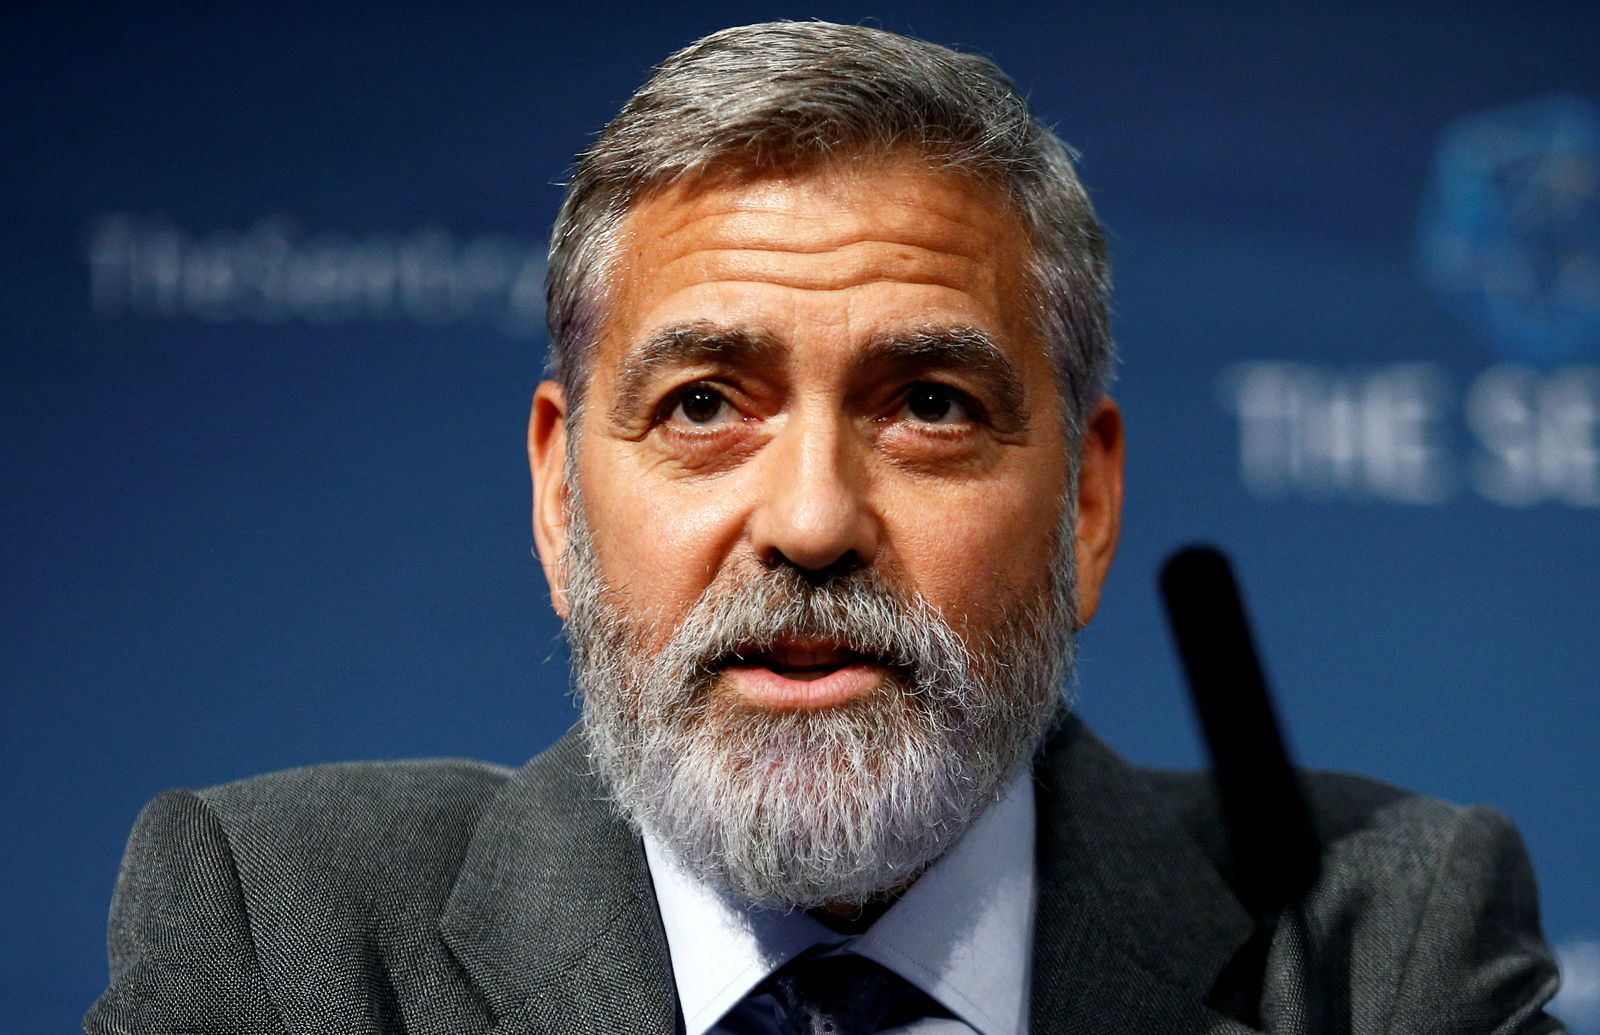 FILE PHOTO: George Clooney speaks at an event about corruption in Africa, in London